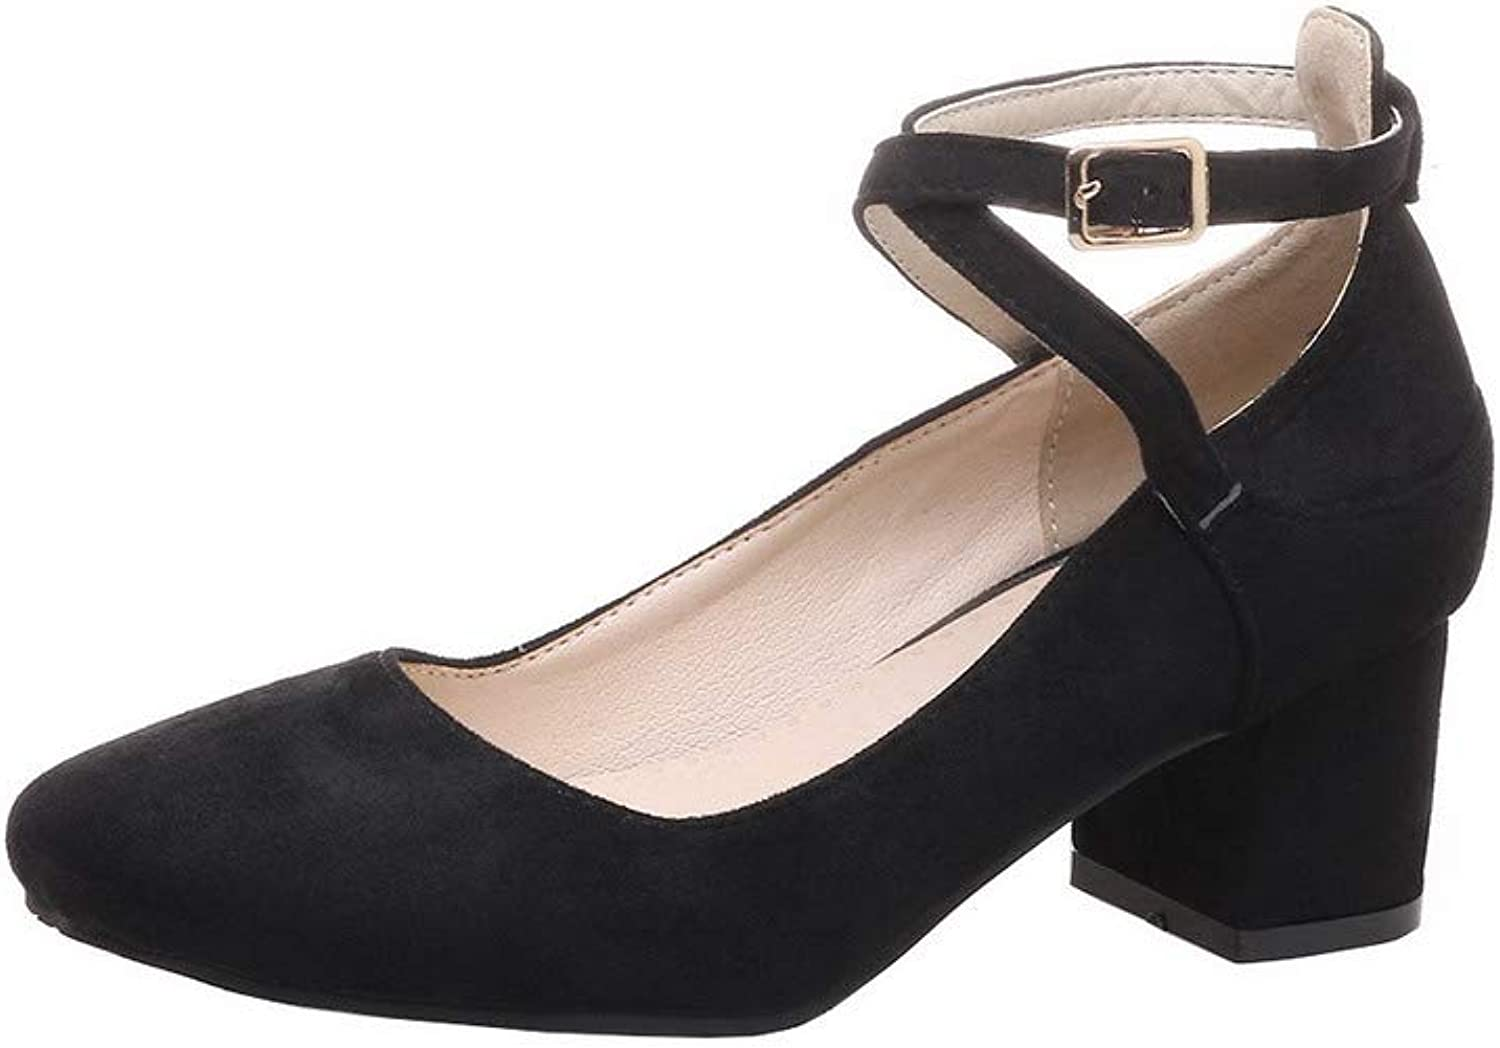 WeenFashion Women's Buckle Kitten-Heels Frosted Pumps-shoes, AMGDX006746